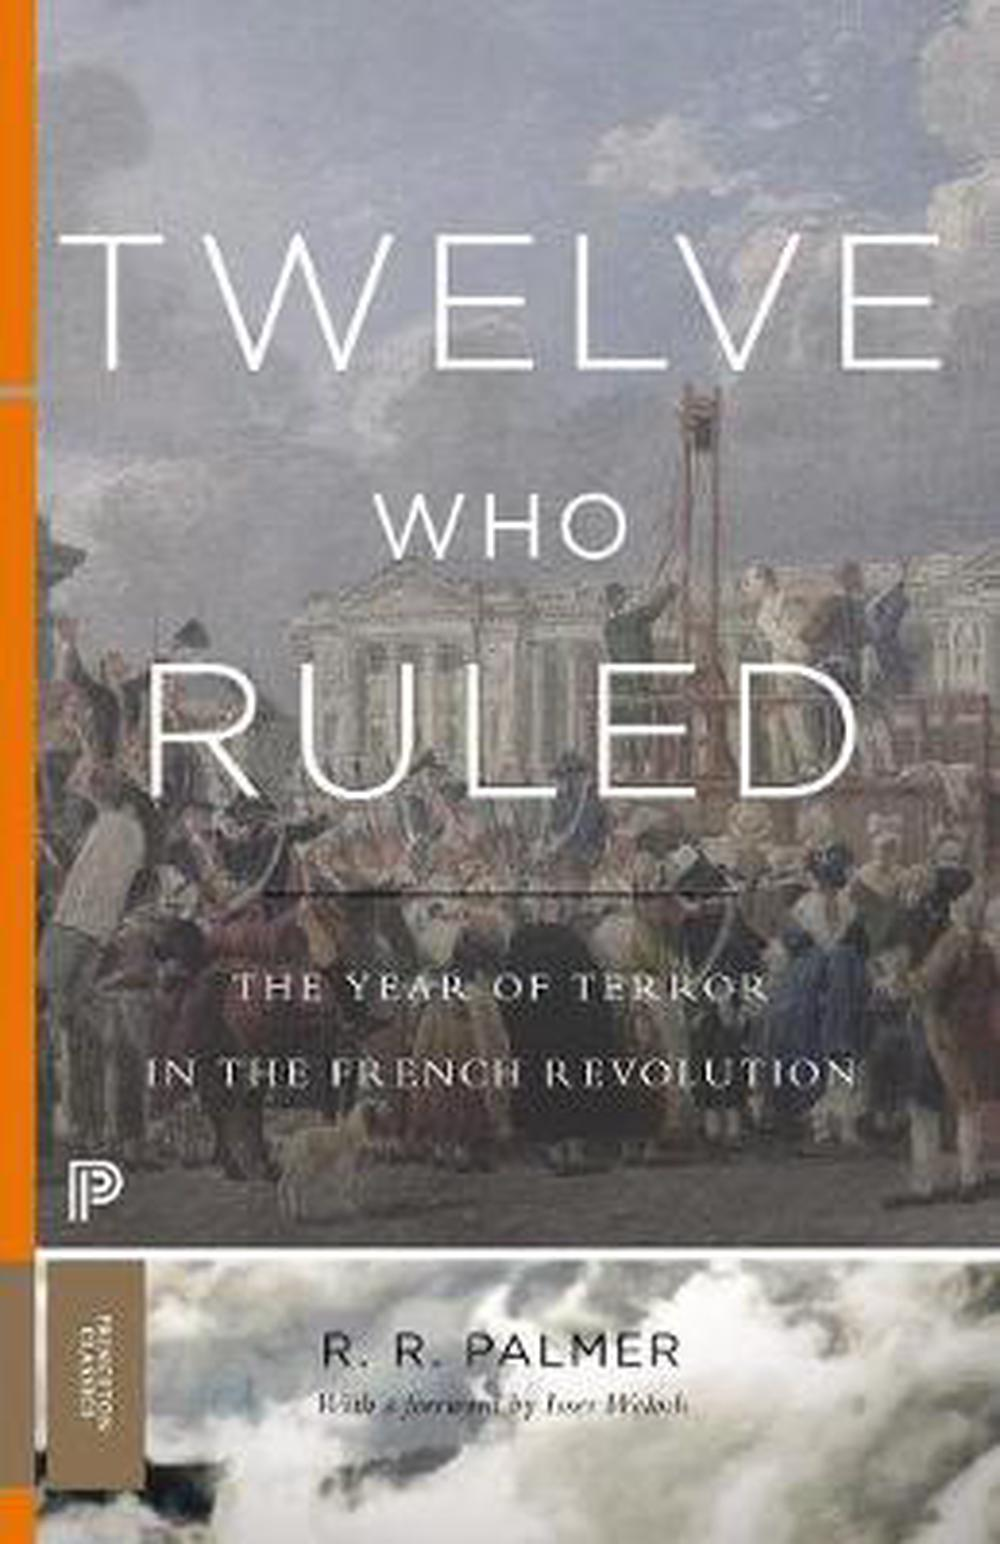 Twelve Who Ruled: The Year of Terror in the French Revolution (Princeton Classics) by R. R. Palmer, ISBN: 9780691175928